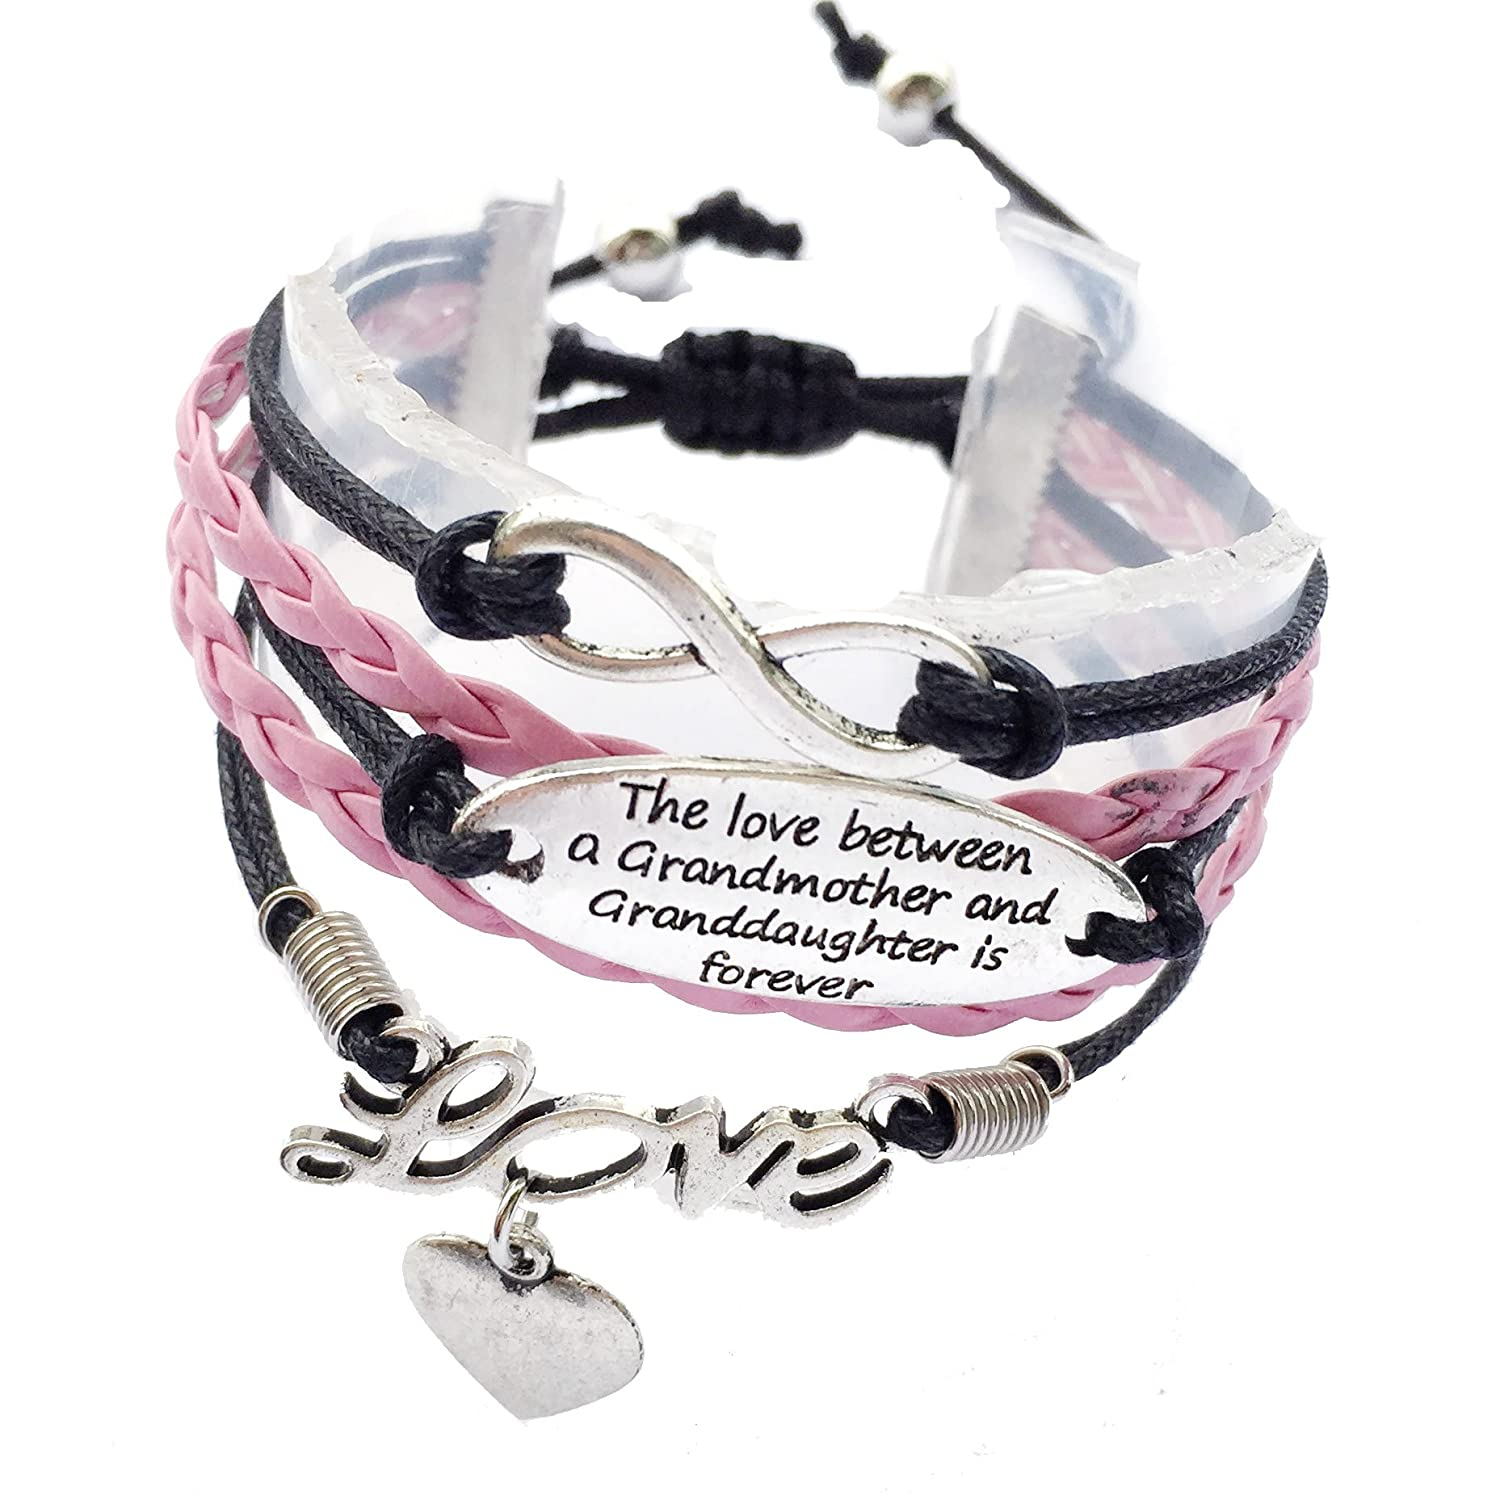 The Love Between The Grandmother And Granddaughter Is Forever Bracelet Adjustable-2 Styles DOLON RC3207-A